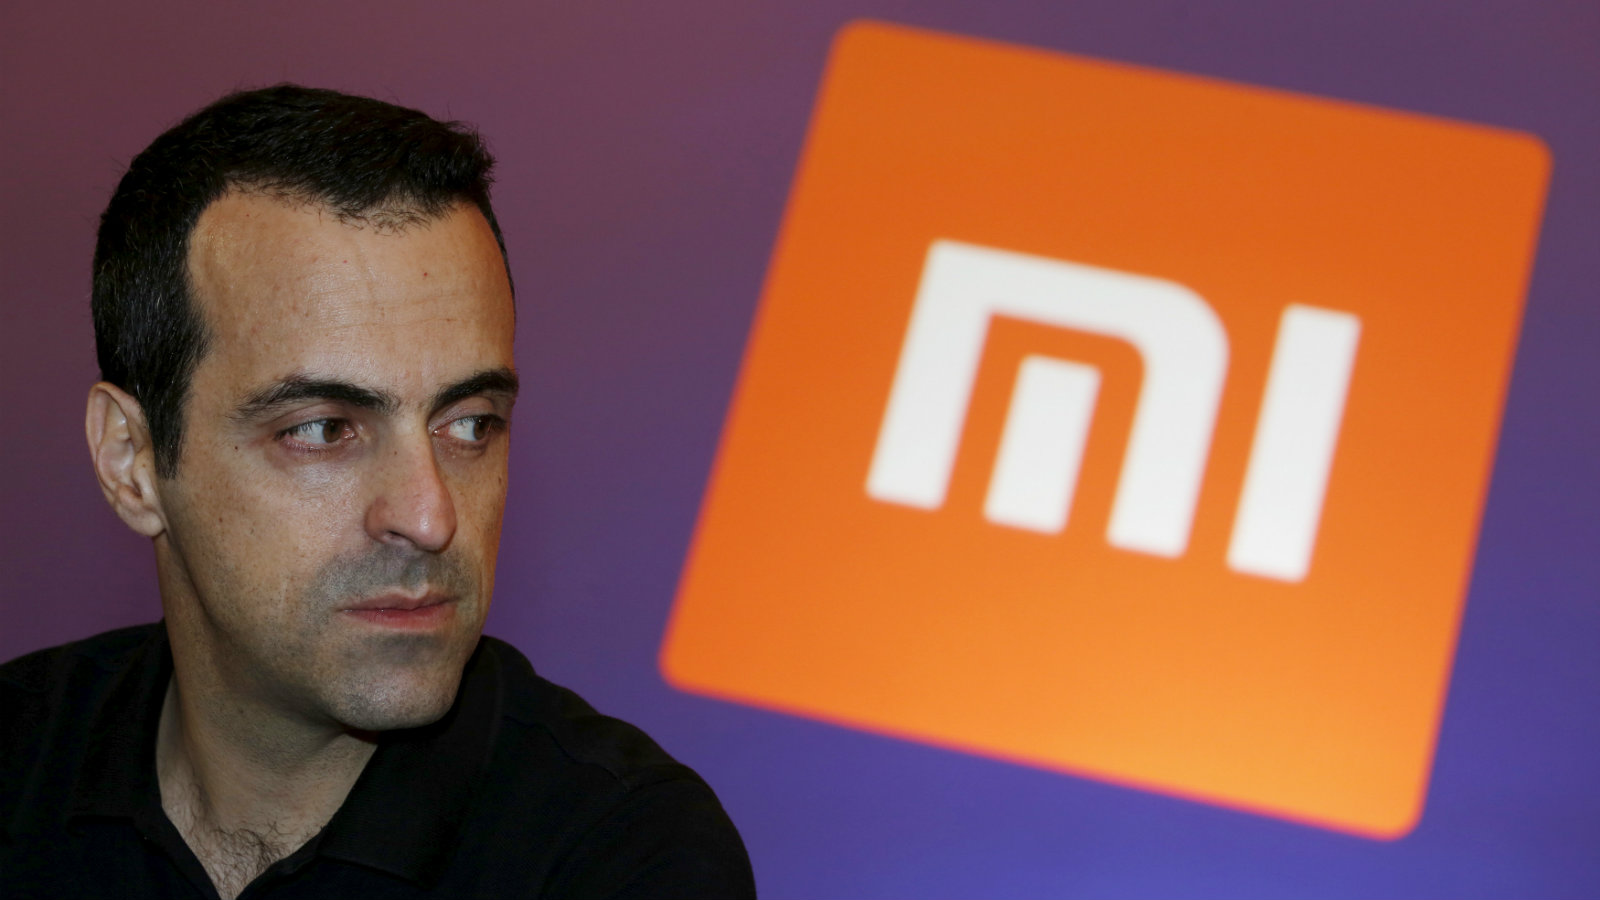 Xiaomi's Vice President Hugo Barra looks on in front of the company's logo during a group interview after the launching ceremony of Redmi Note 3 in Hong Kong, China March 21, 2016.